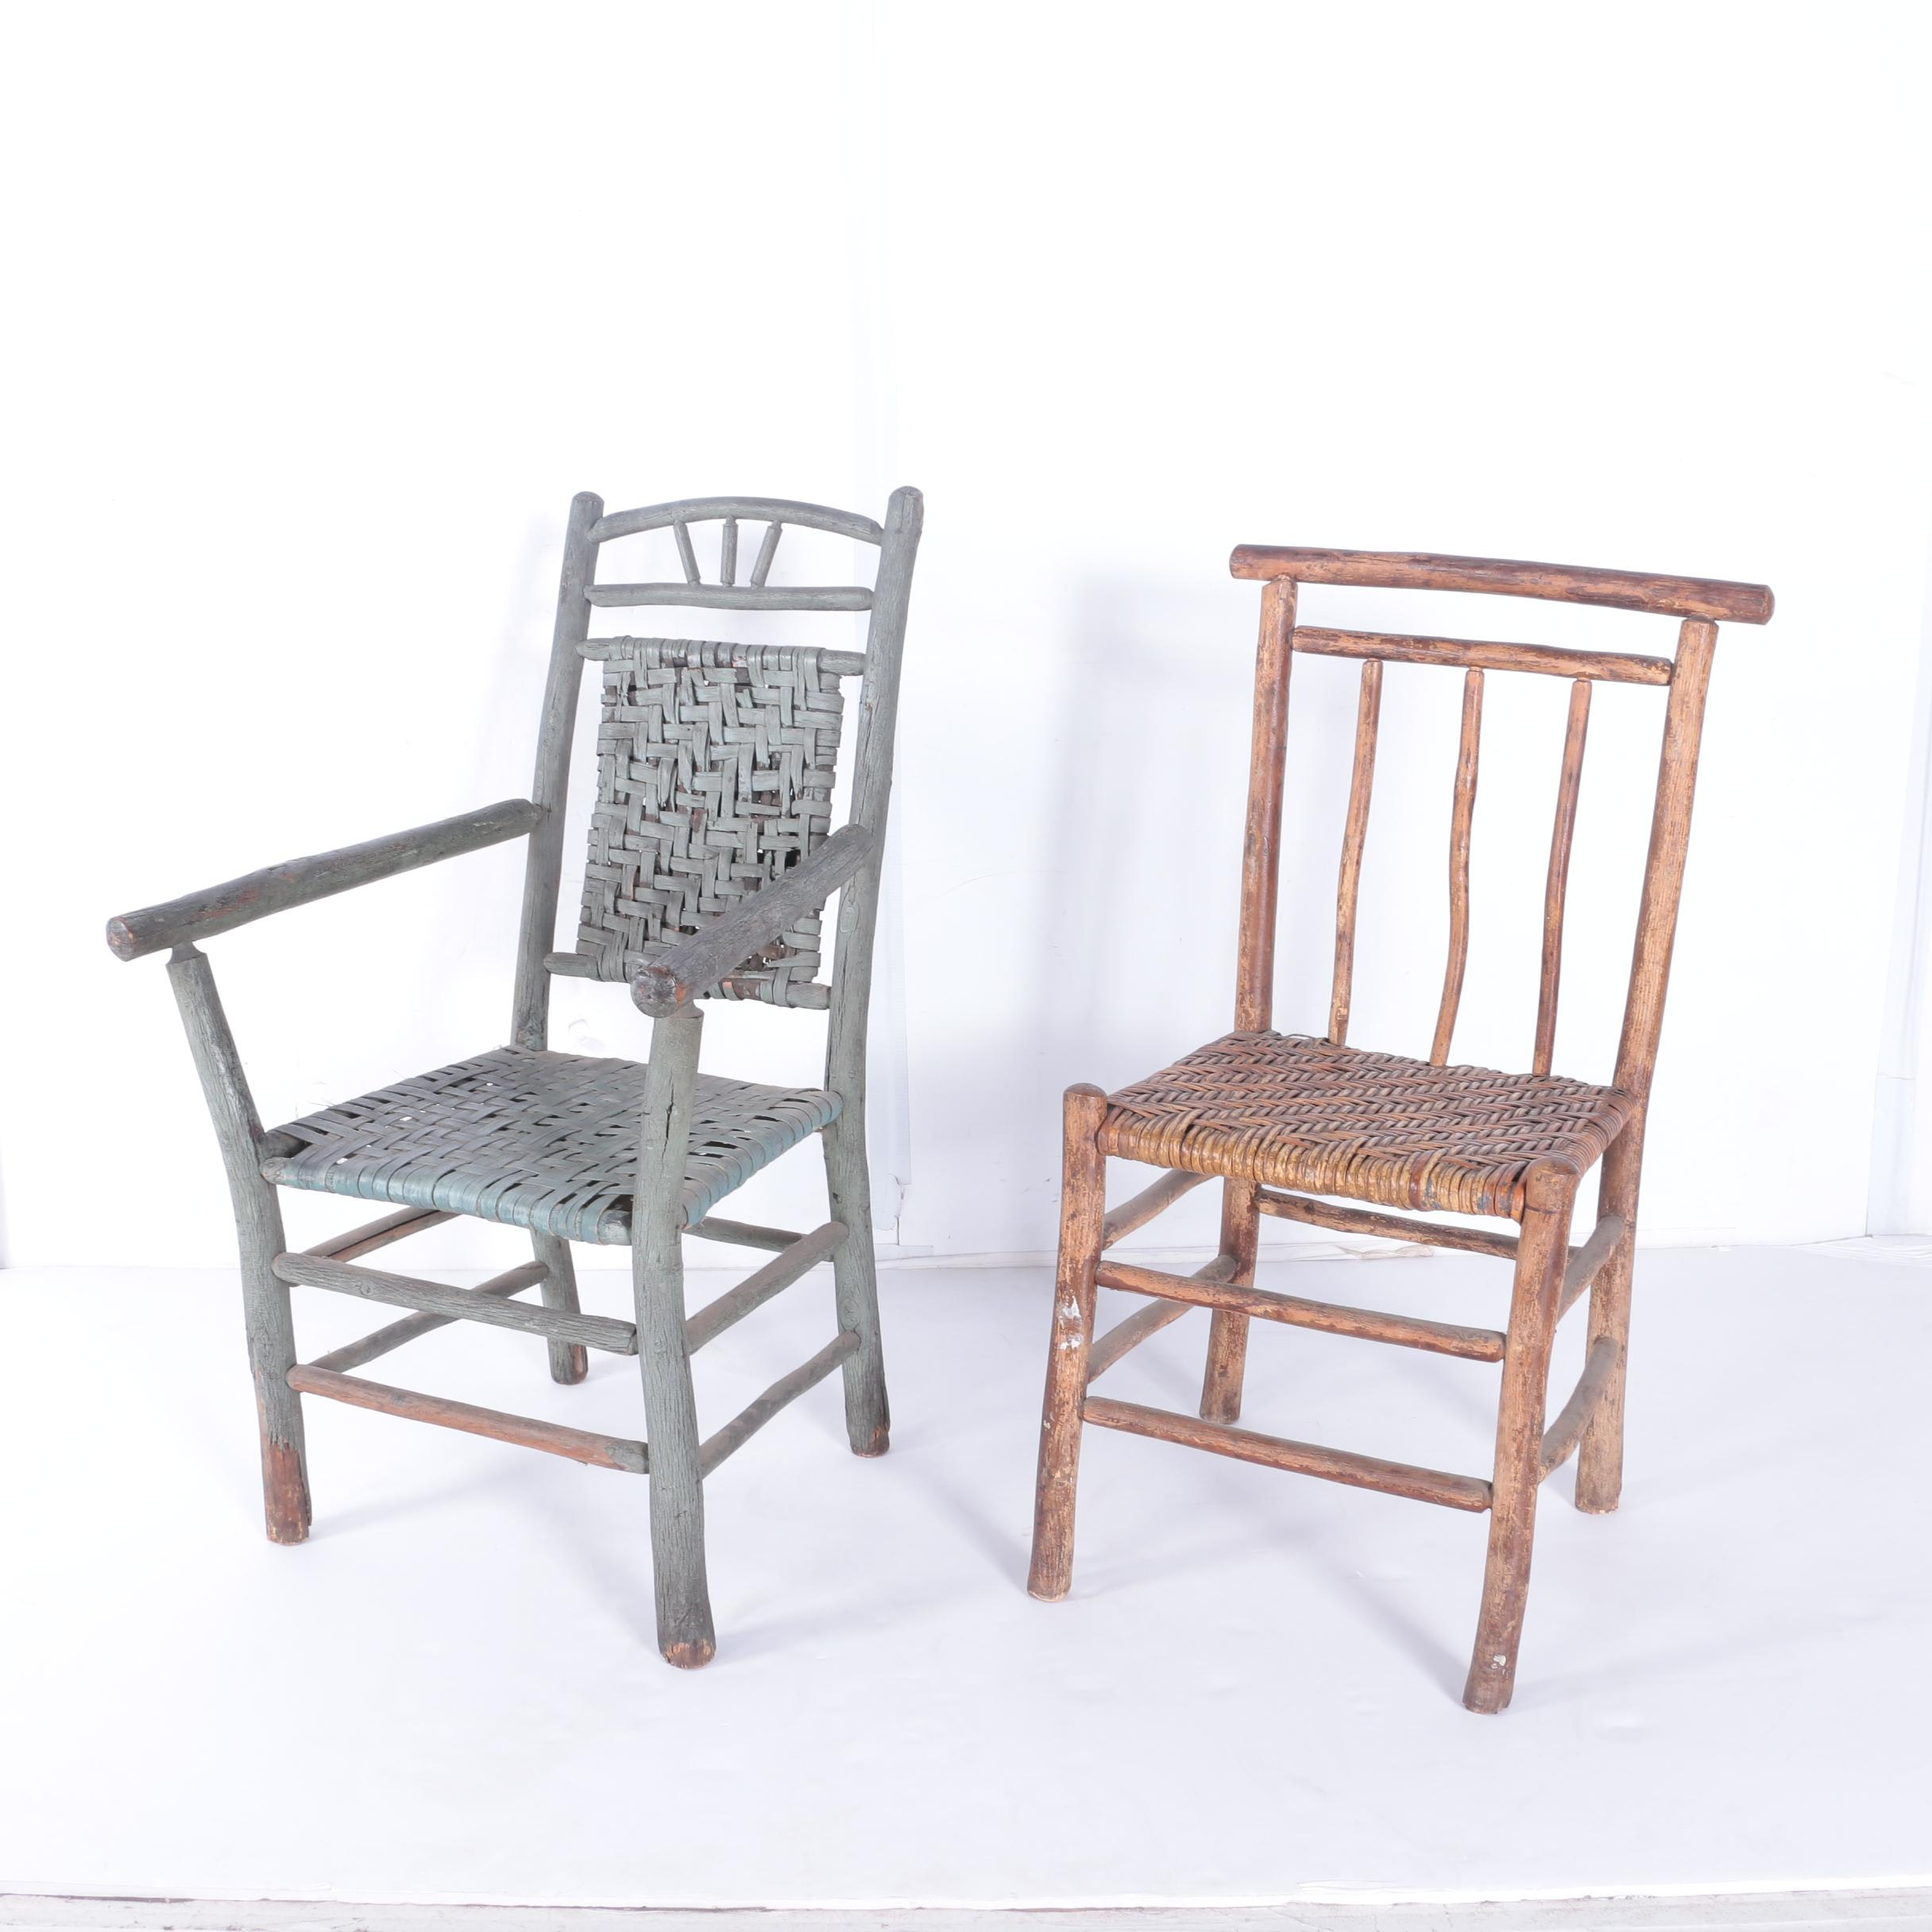 Rustic Wooden Chairs With Woven Seats